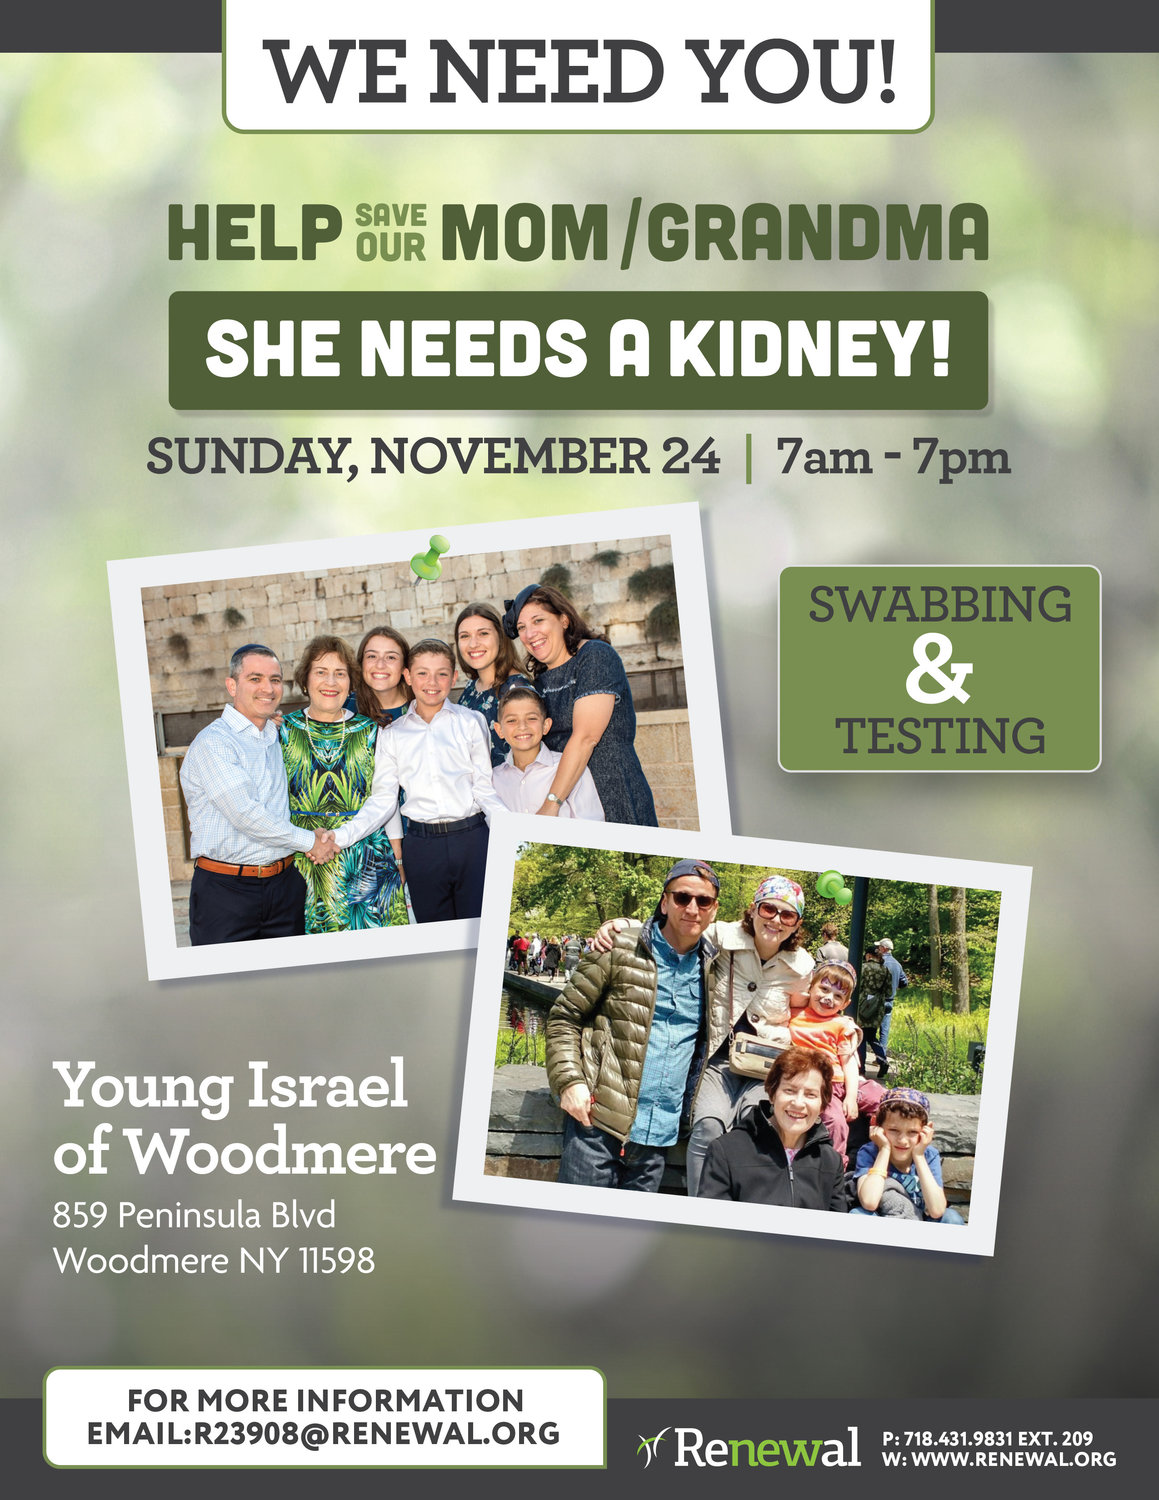 Woodmere resident Jason Goldfarb organized a Nov. 24 event in partnership with Renewal: Kidney Transplants to have people tested in hopes of expediting the process of finding a donor for his mother, Estelle.